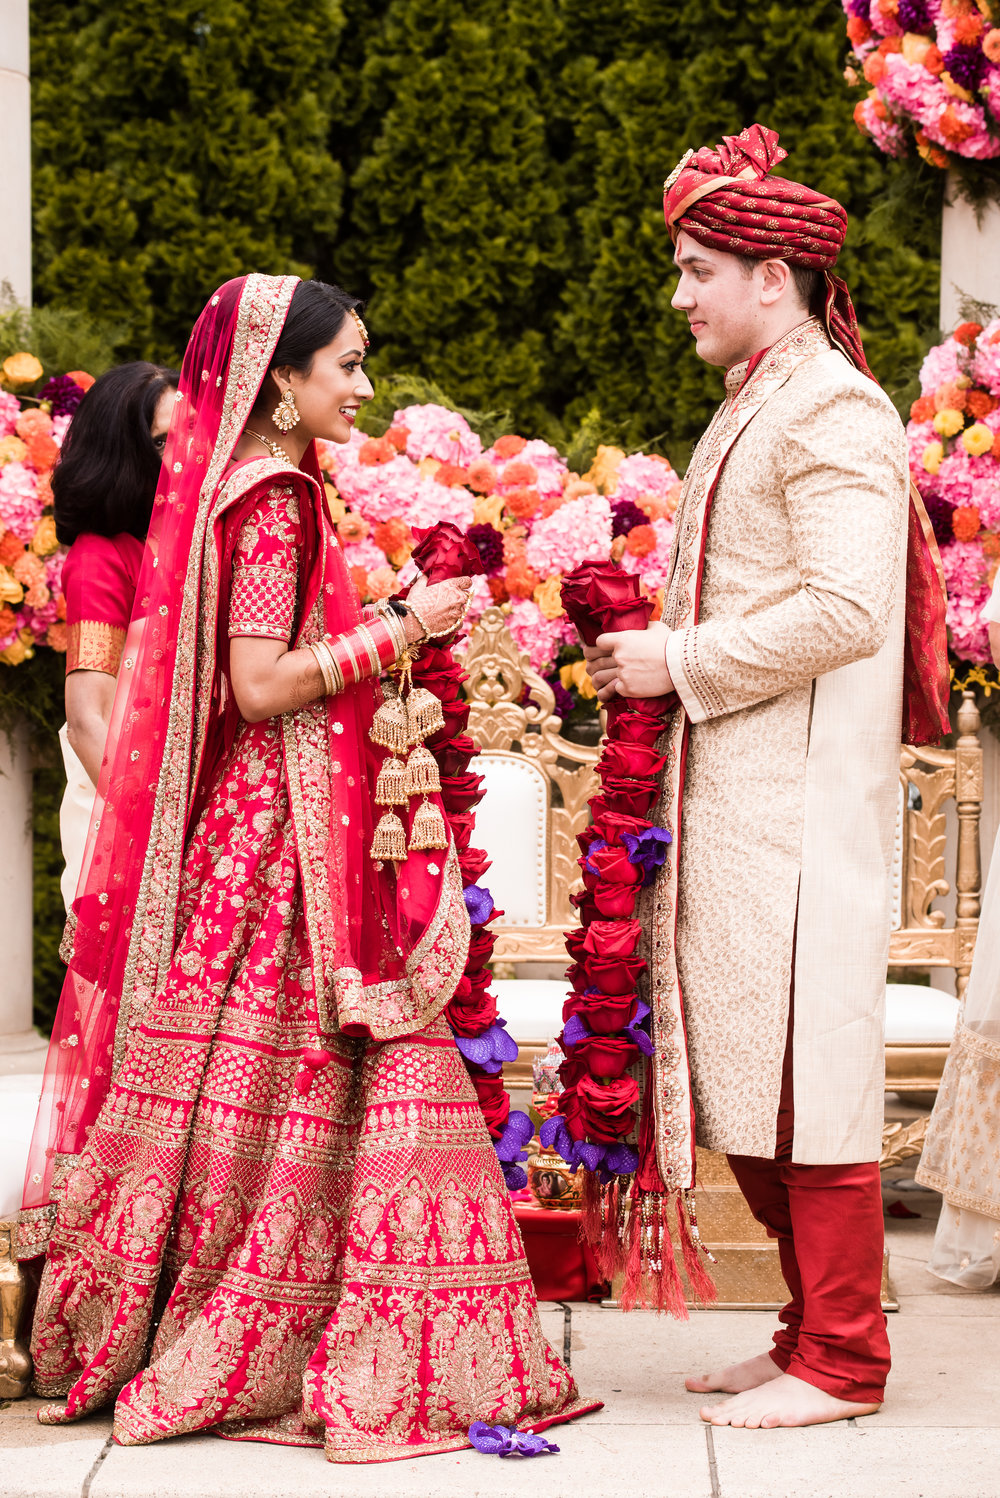 INDIAN WEDDING BRIDE AND GROOM CEREMONY.jpg